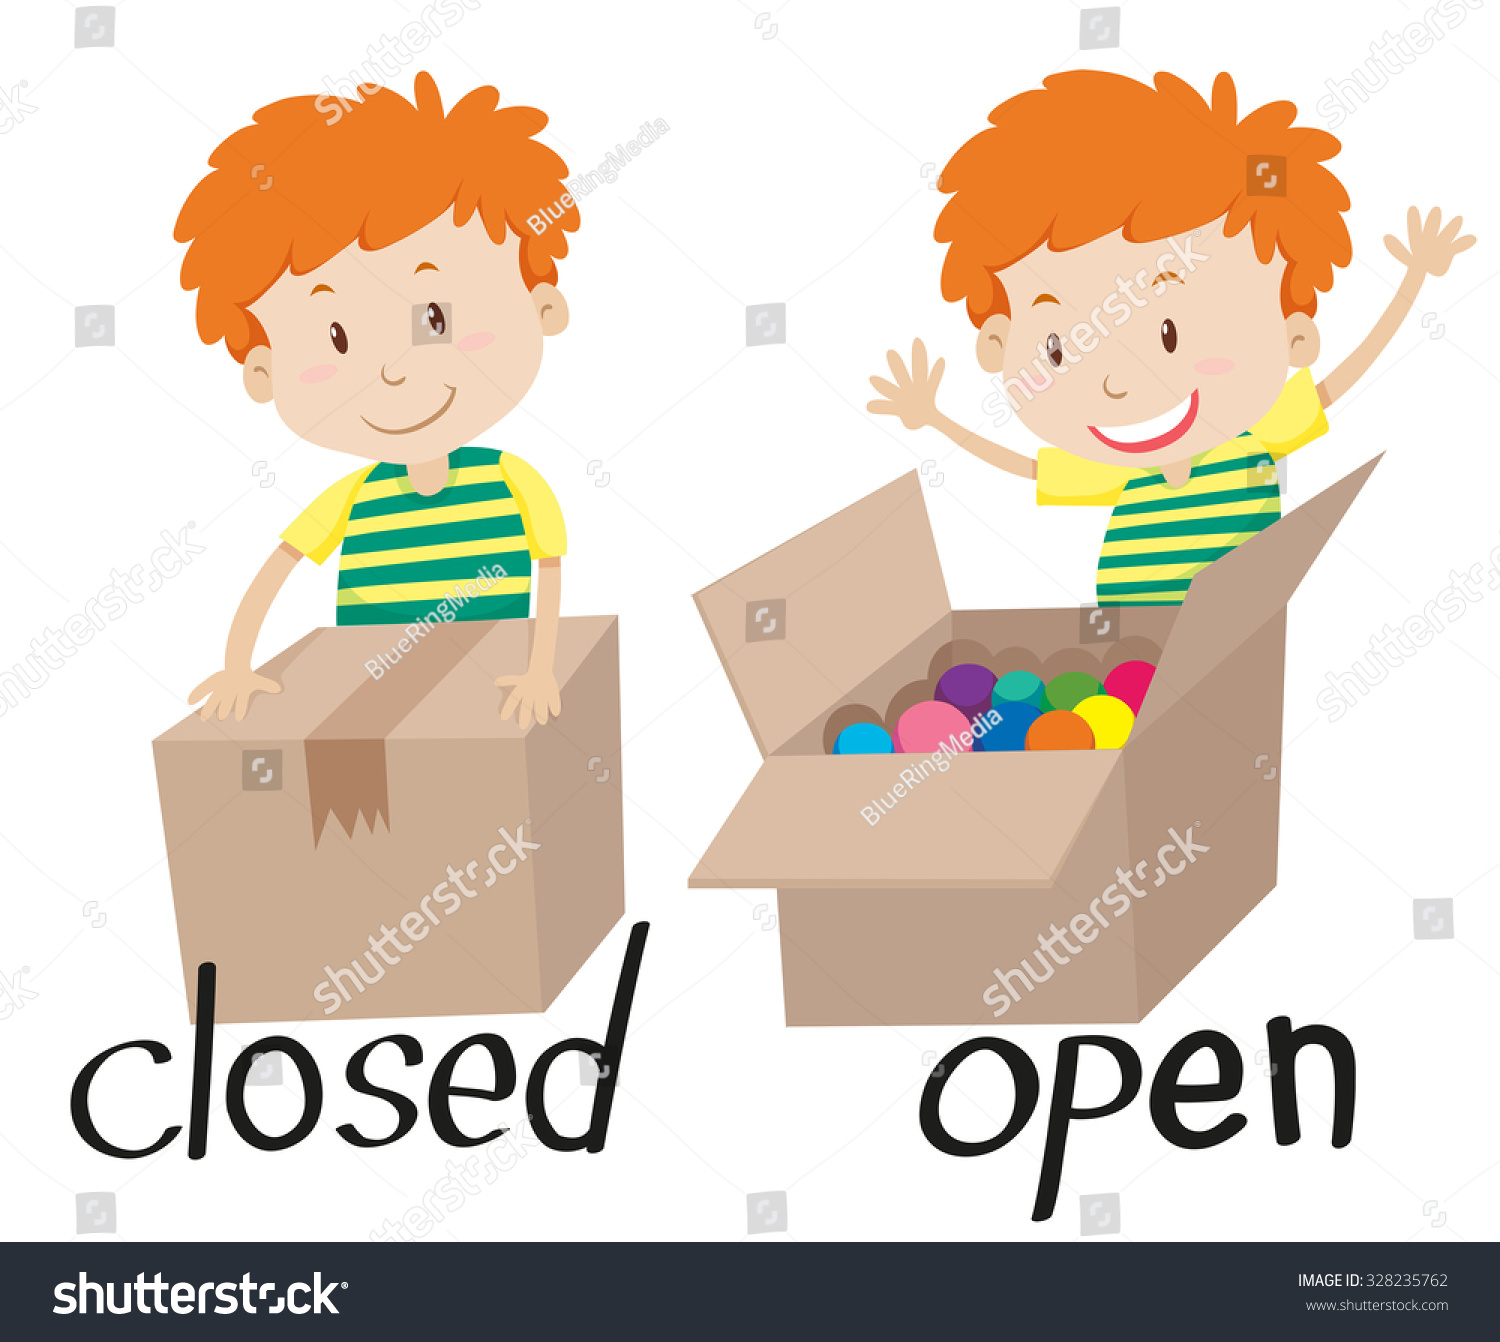 Opposite Adjective Closed Opened Illustration Stock Vector